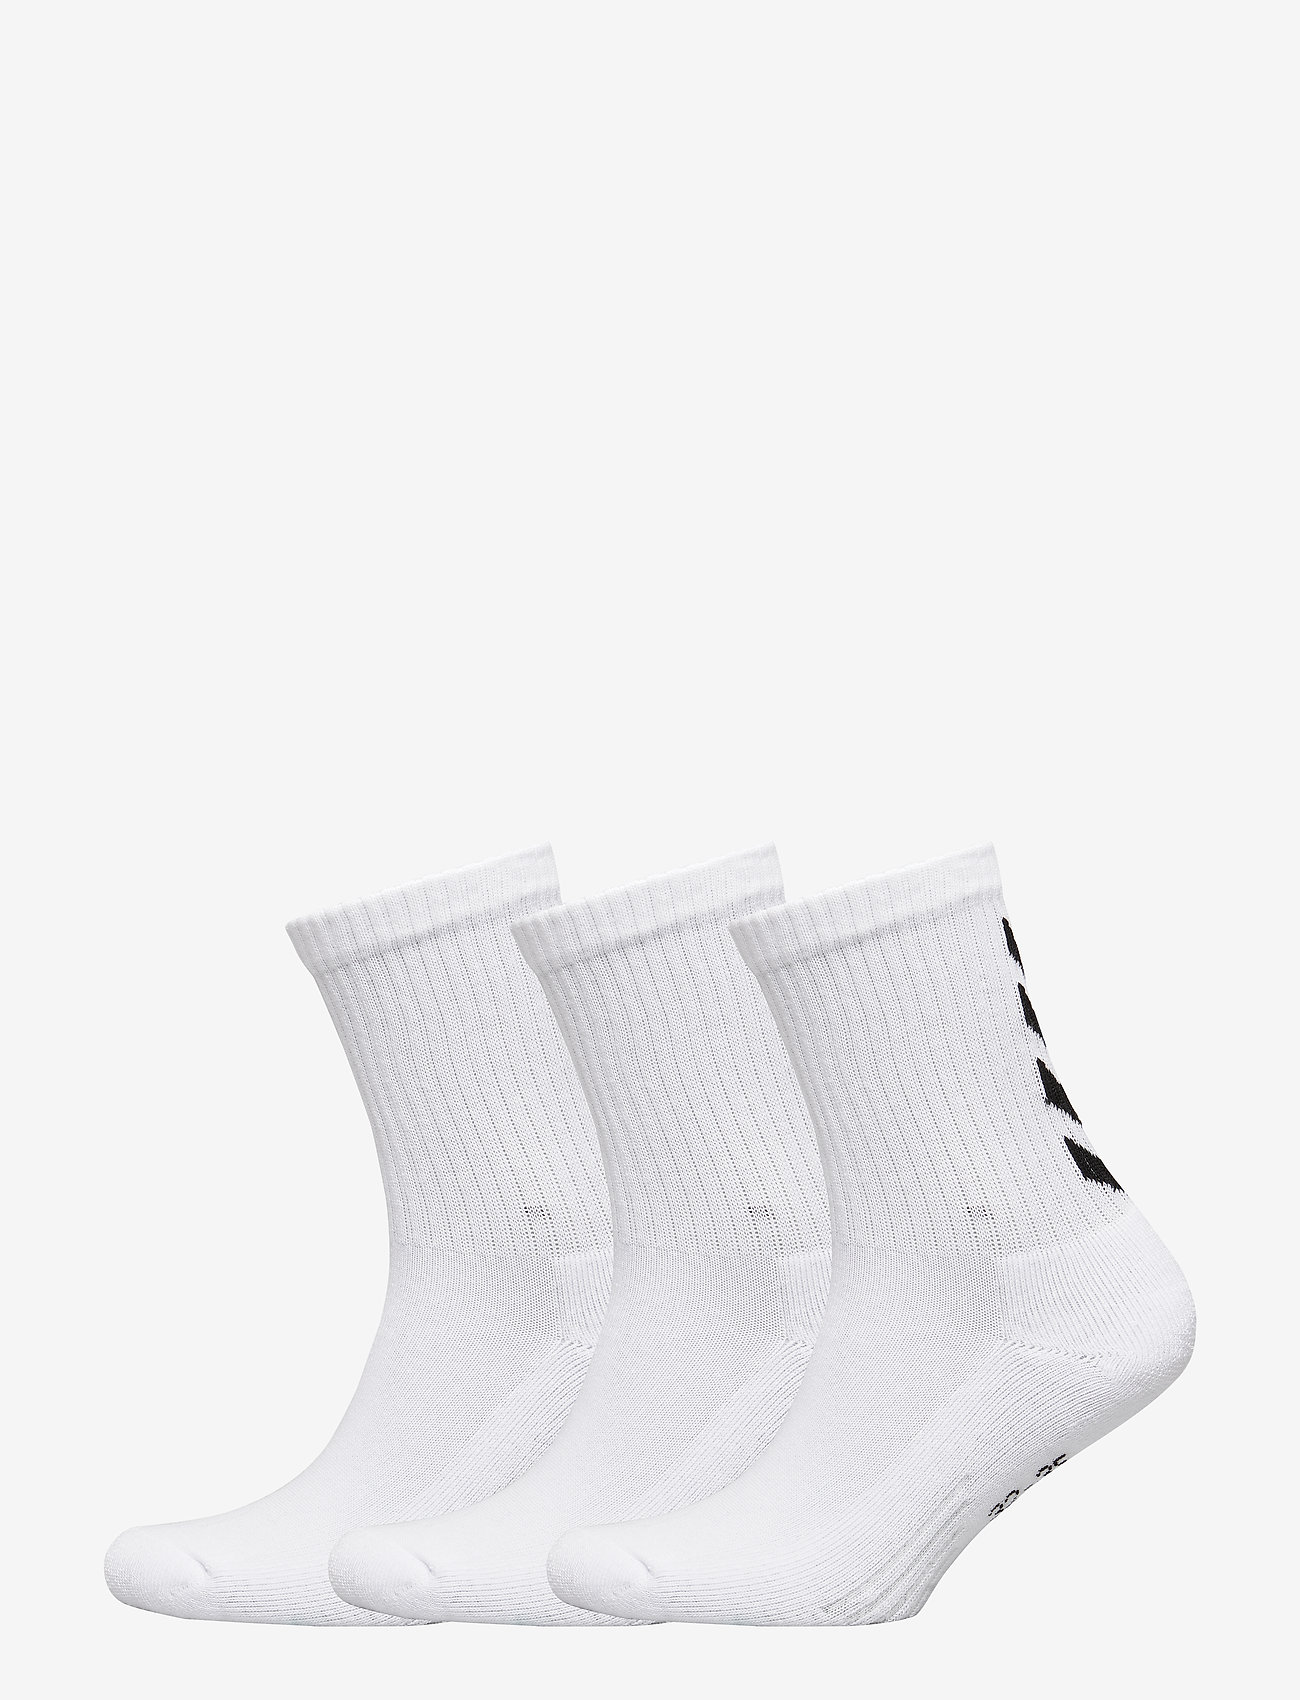 Hummel - FUNDAMENTAL 3-PACK SOCK - regular socks - white - 0